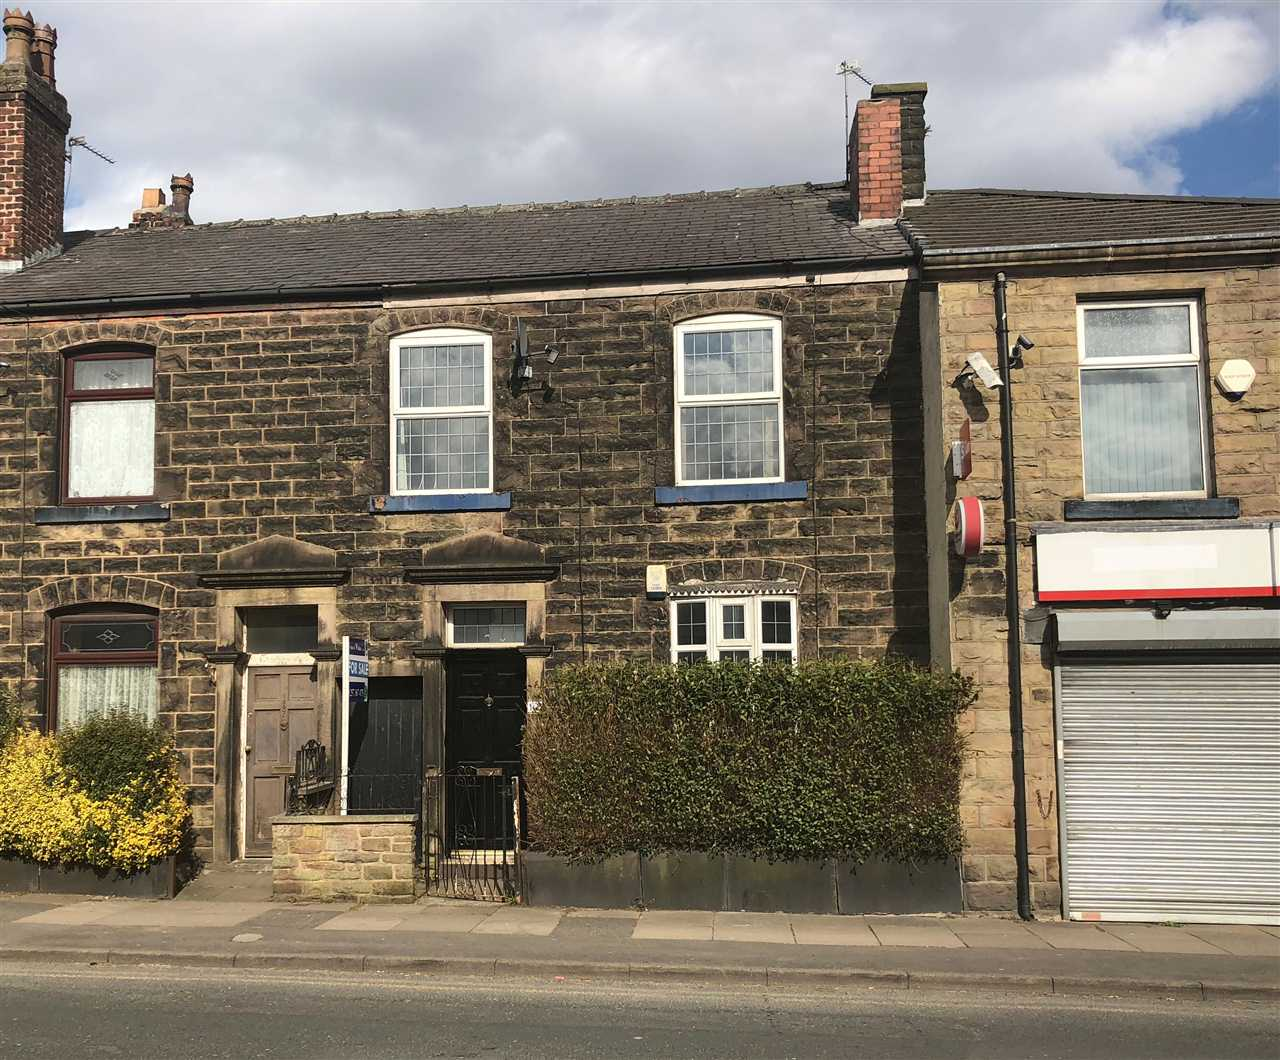 3 bed terraced for sale in Chorley Road, Adlngton, PR6